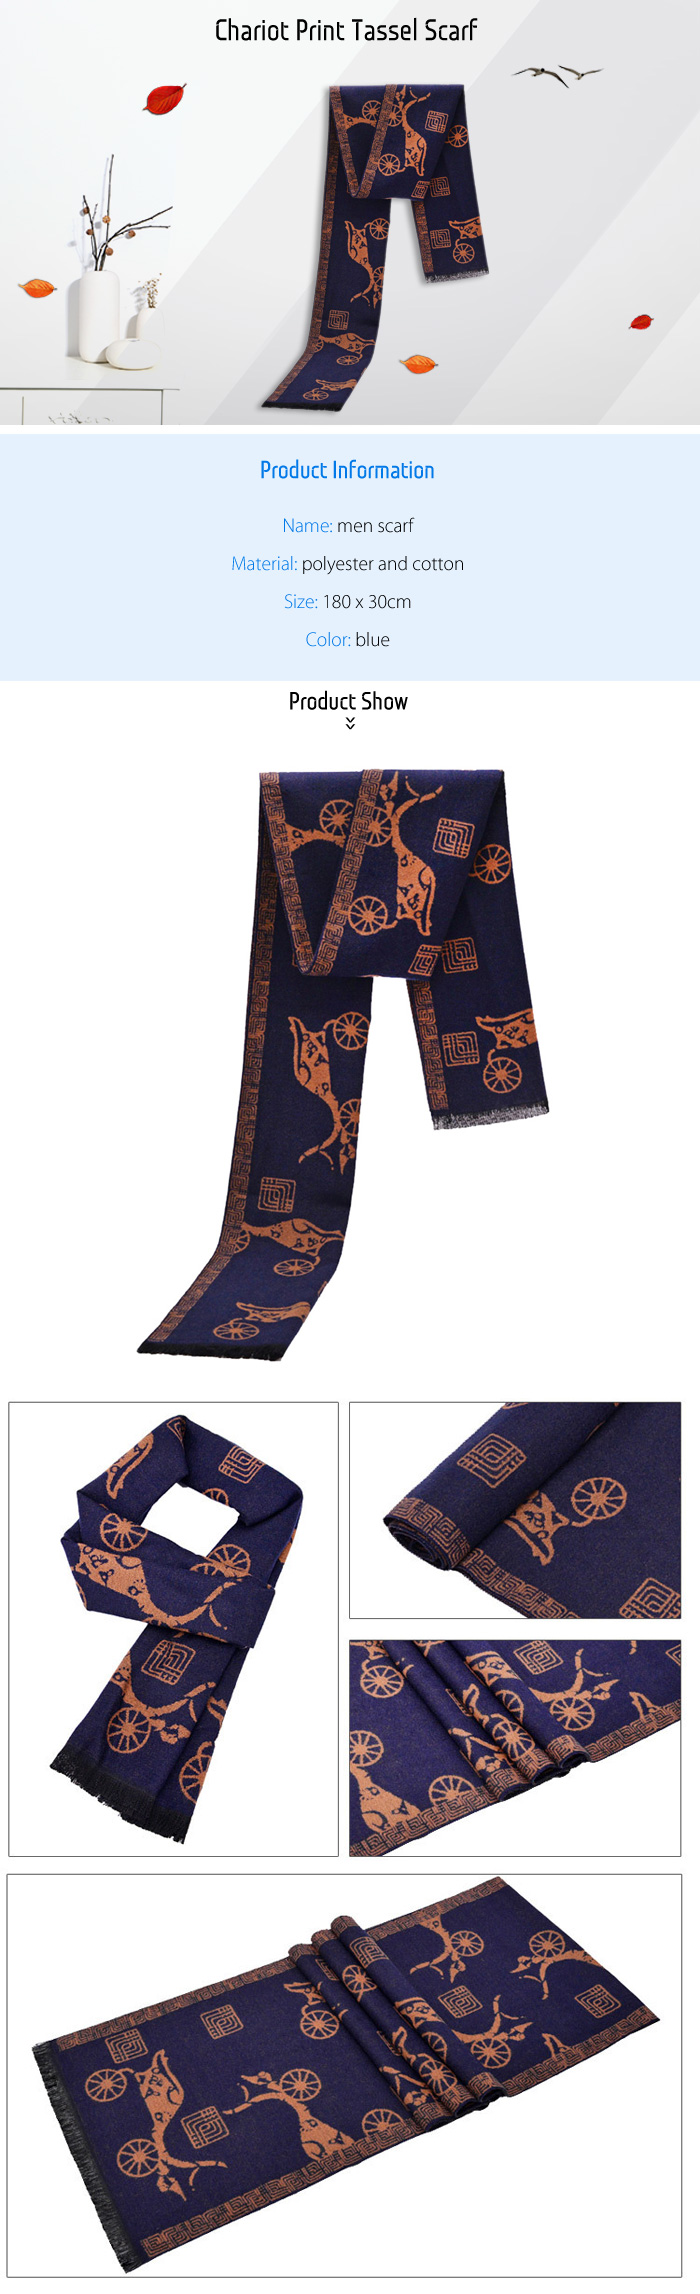 Men Toasty Chariot Print Scarf Breathable Neck Warmer Neckerchief with Tassel